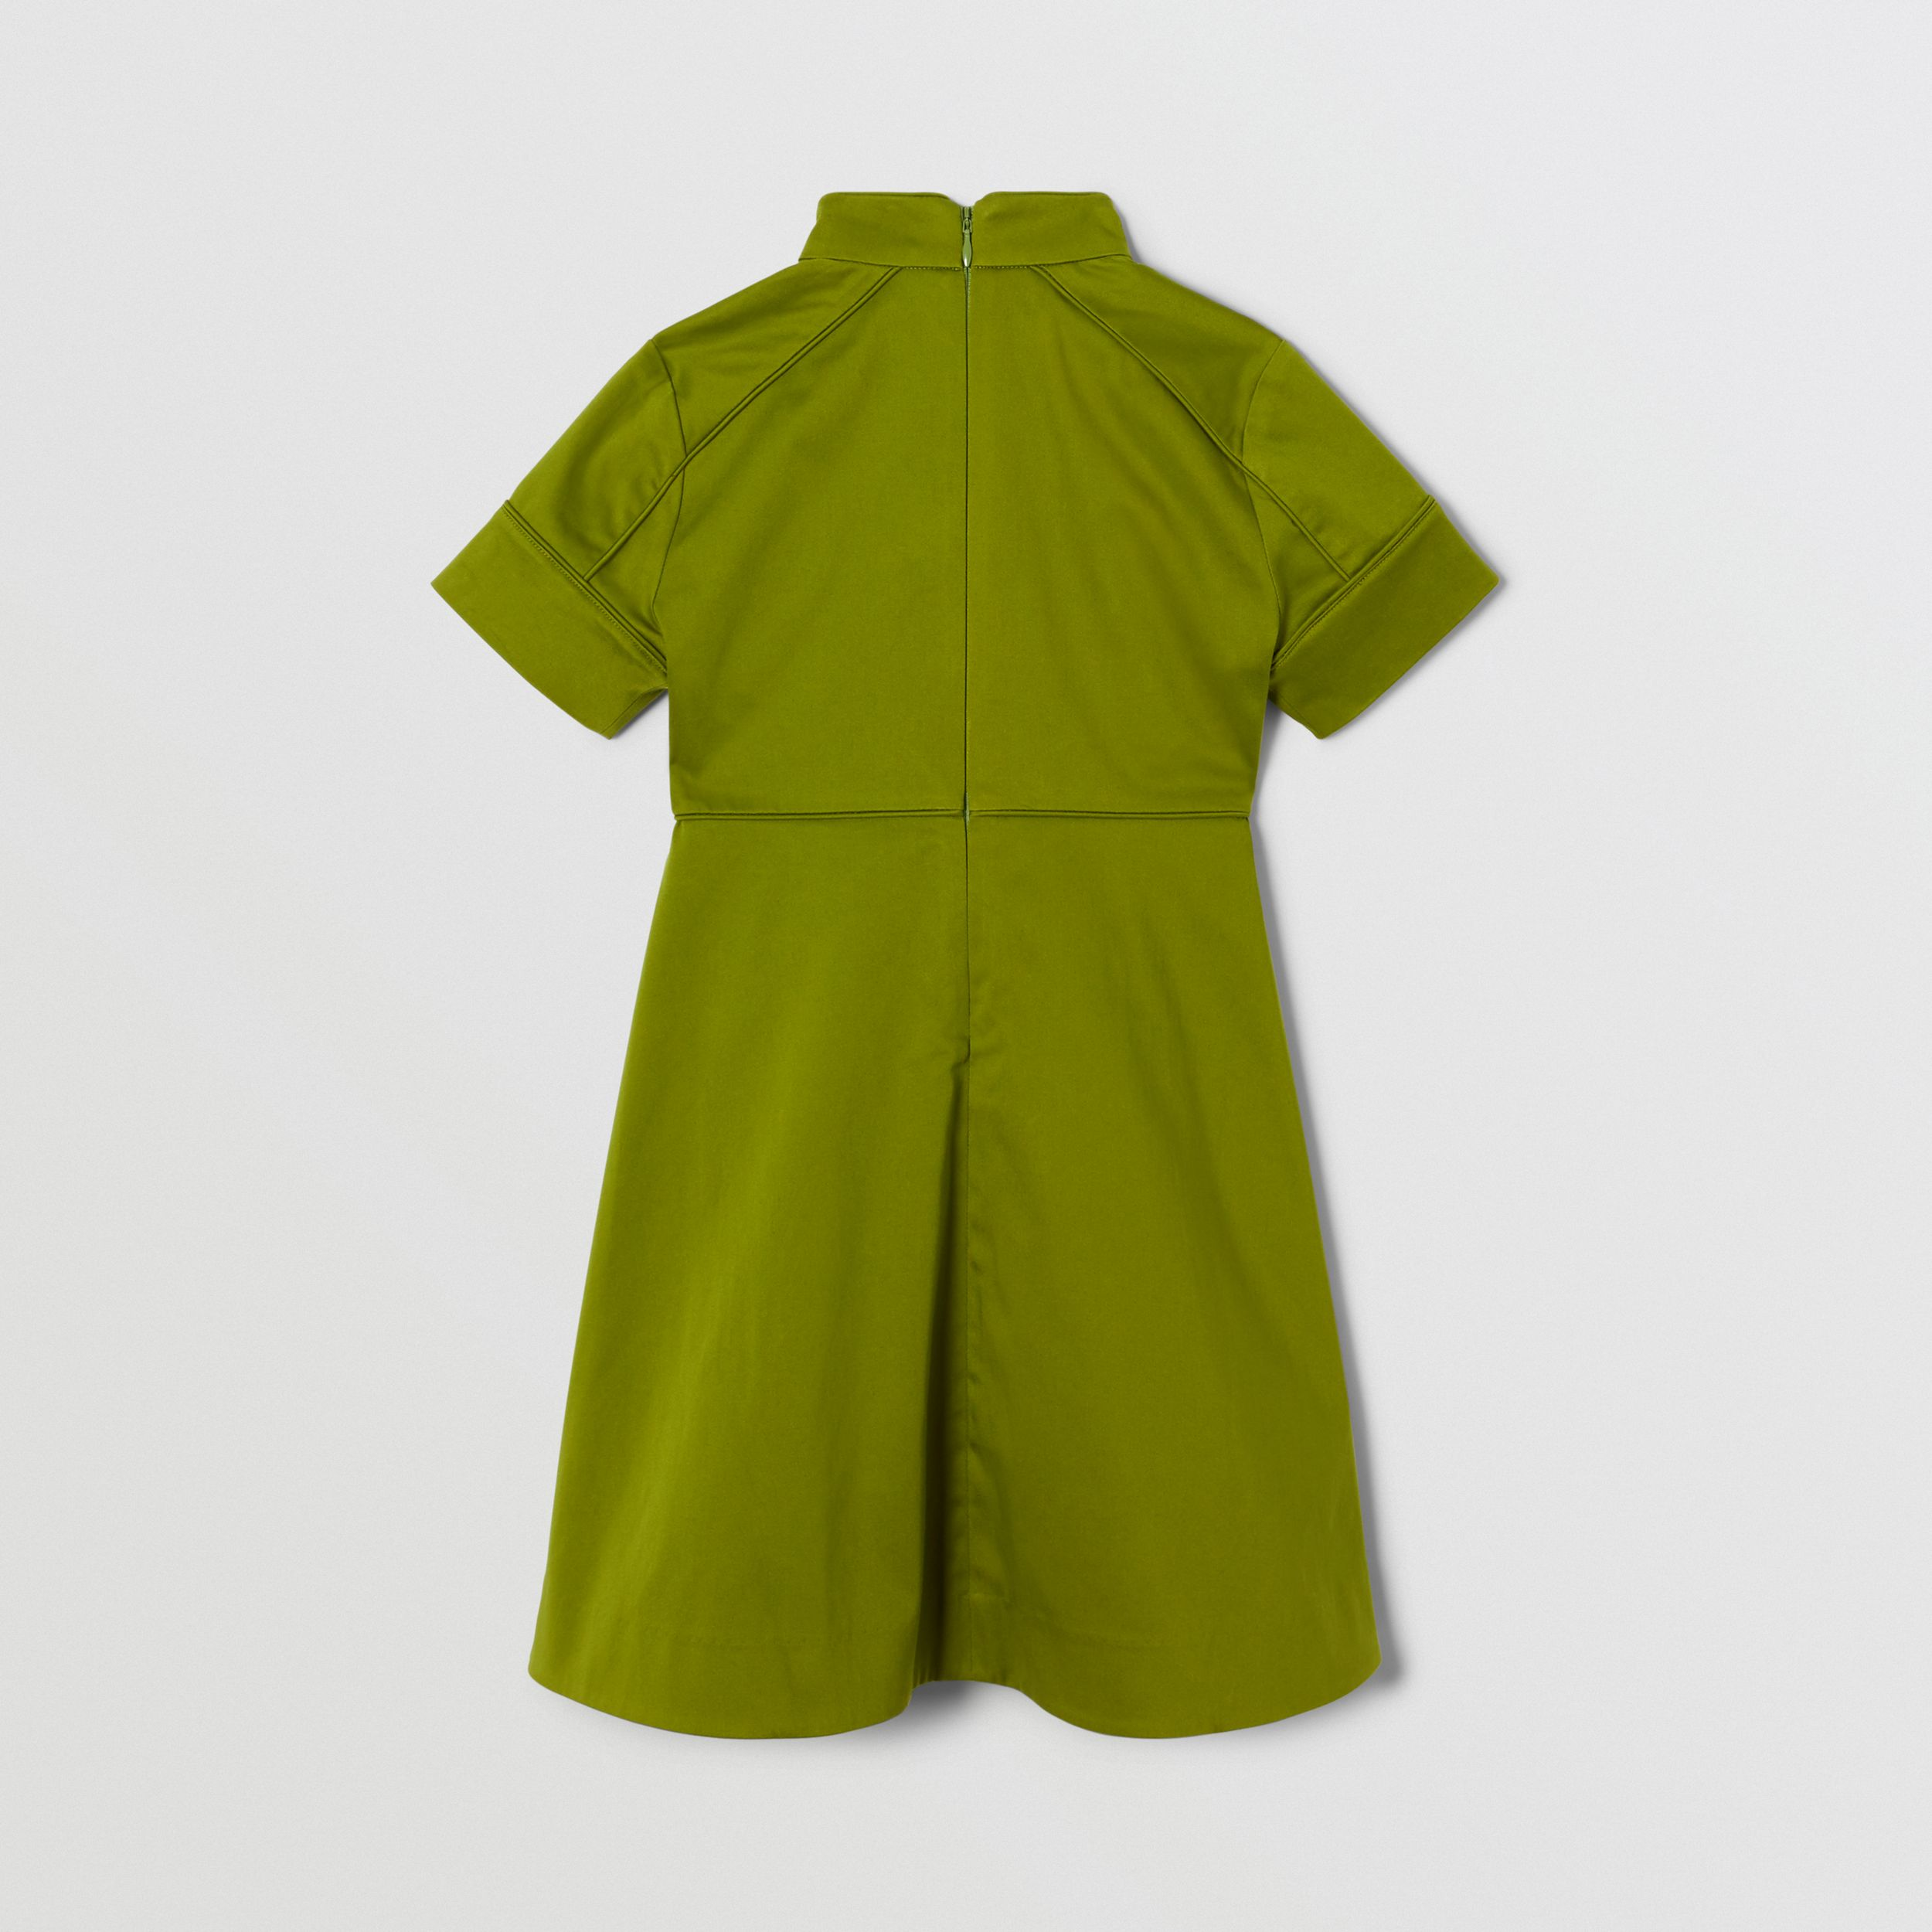 Short-sleeve Cotton Sateen Funnel Neck Dress in Bright Green | Burberry - 4